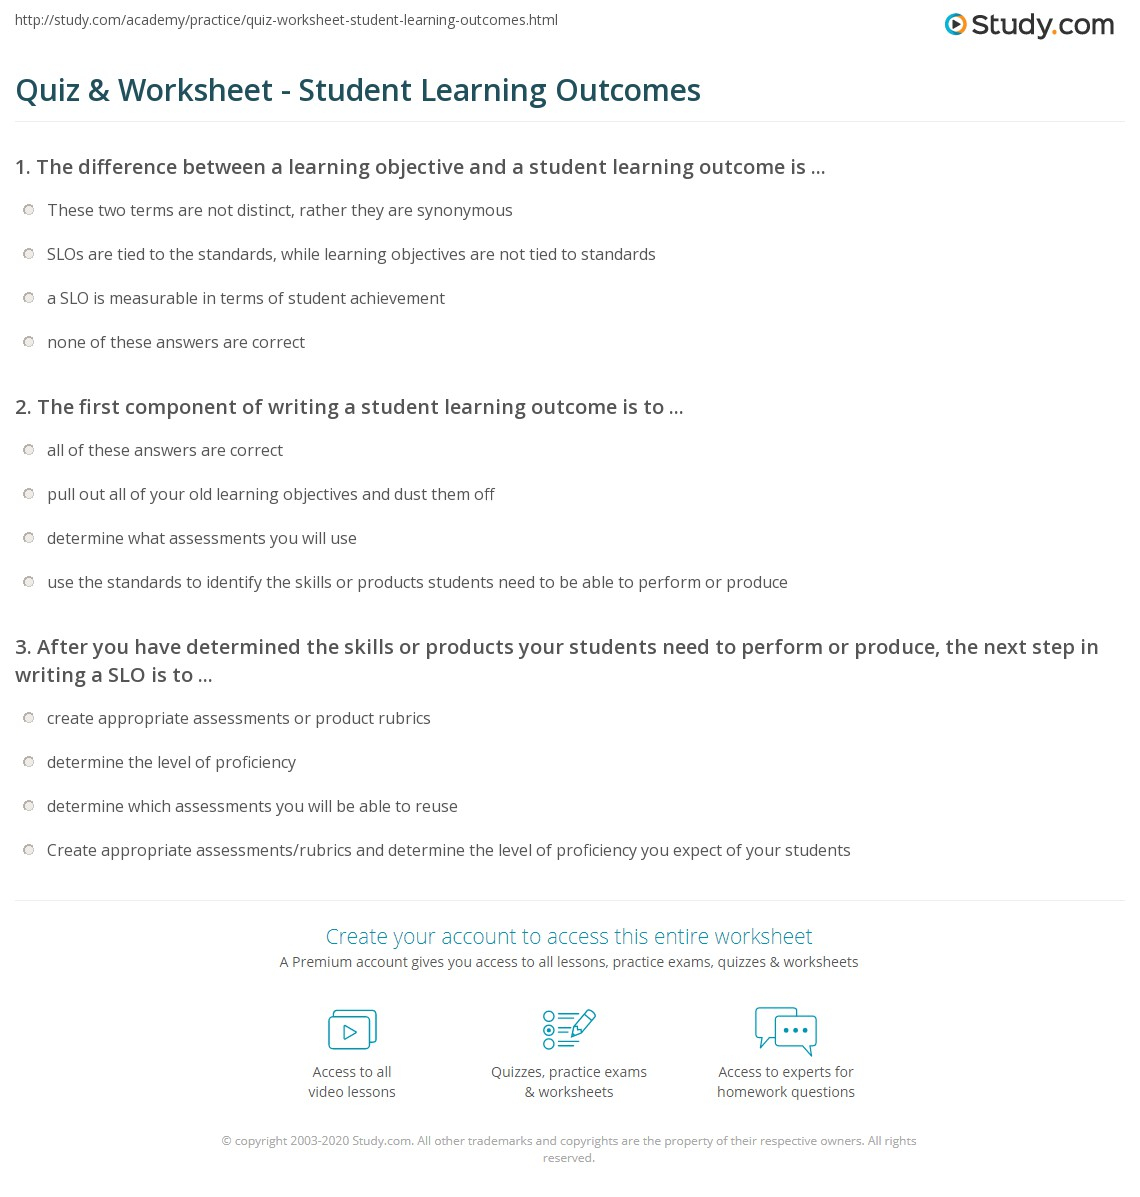 Quiz & Worksheet - Student Learning Outcomes | Study